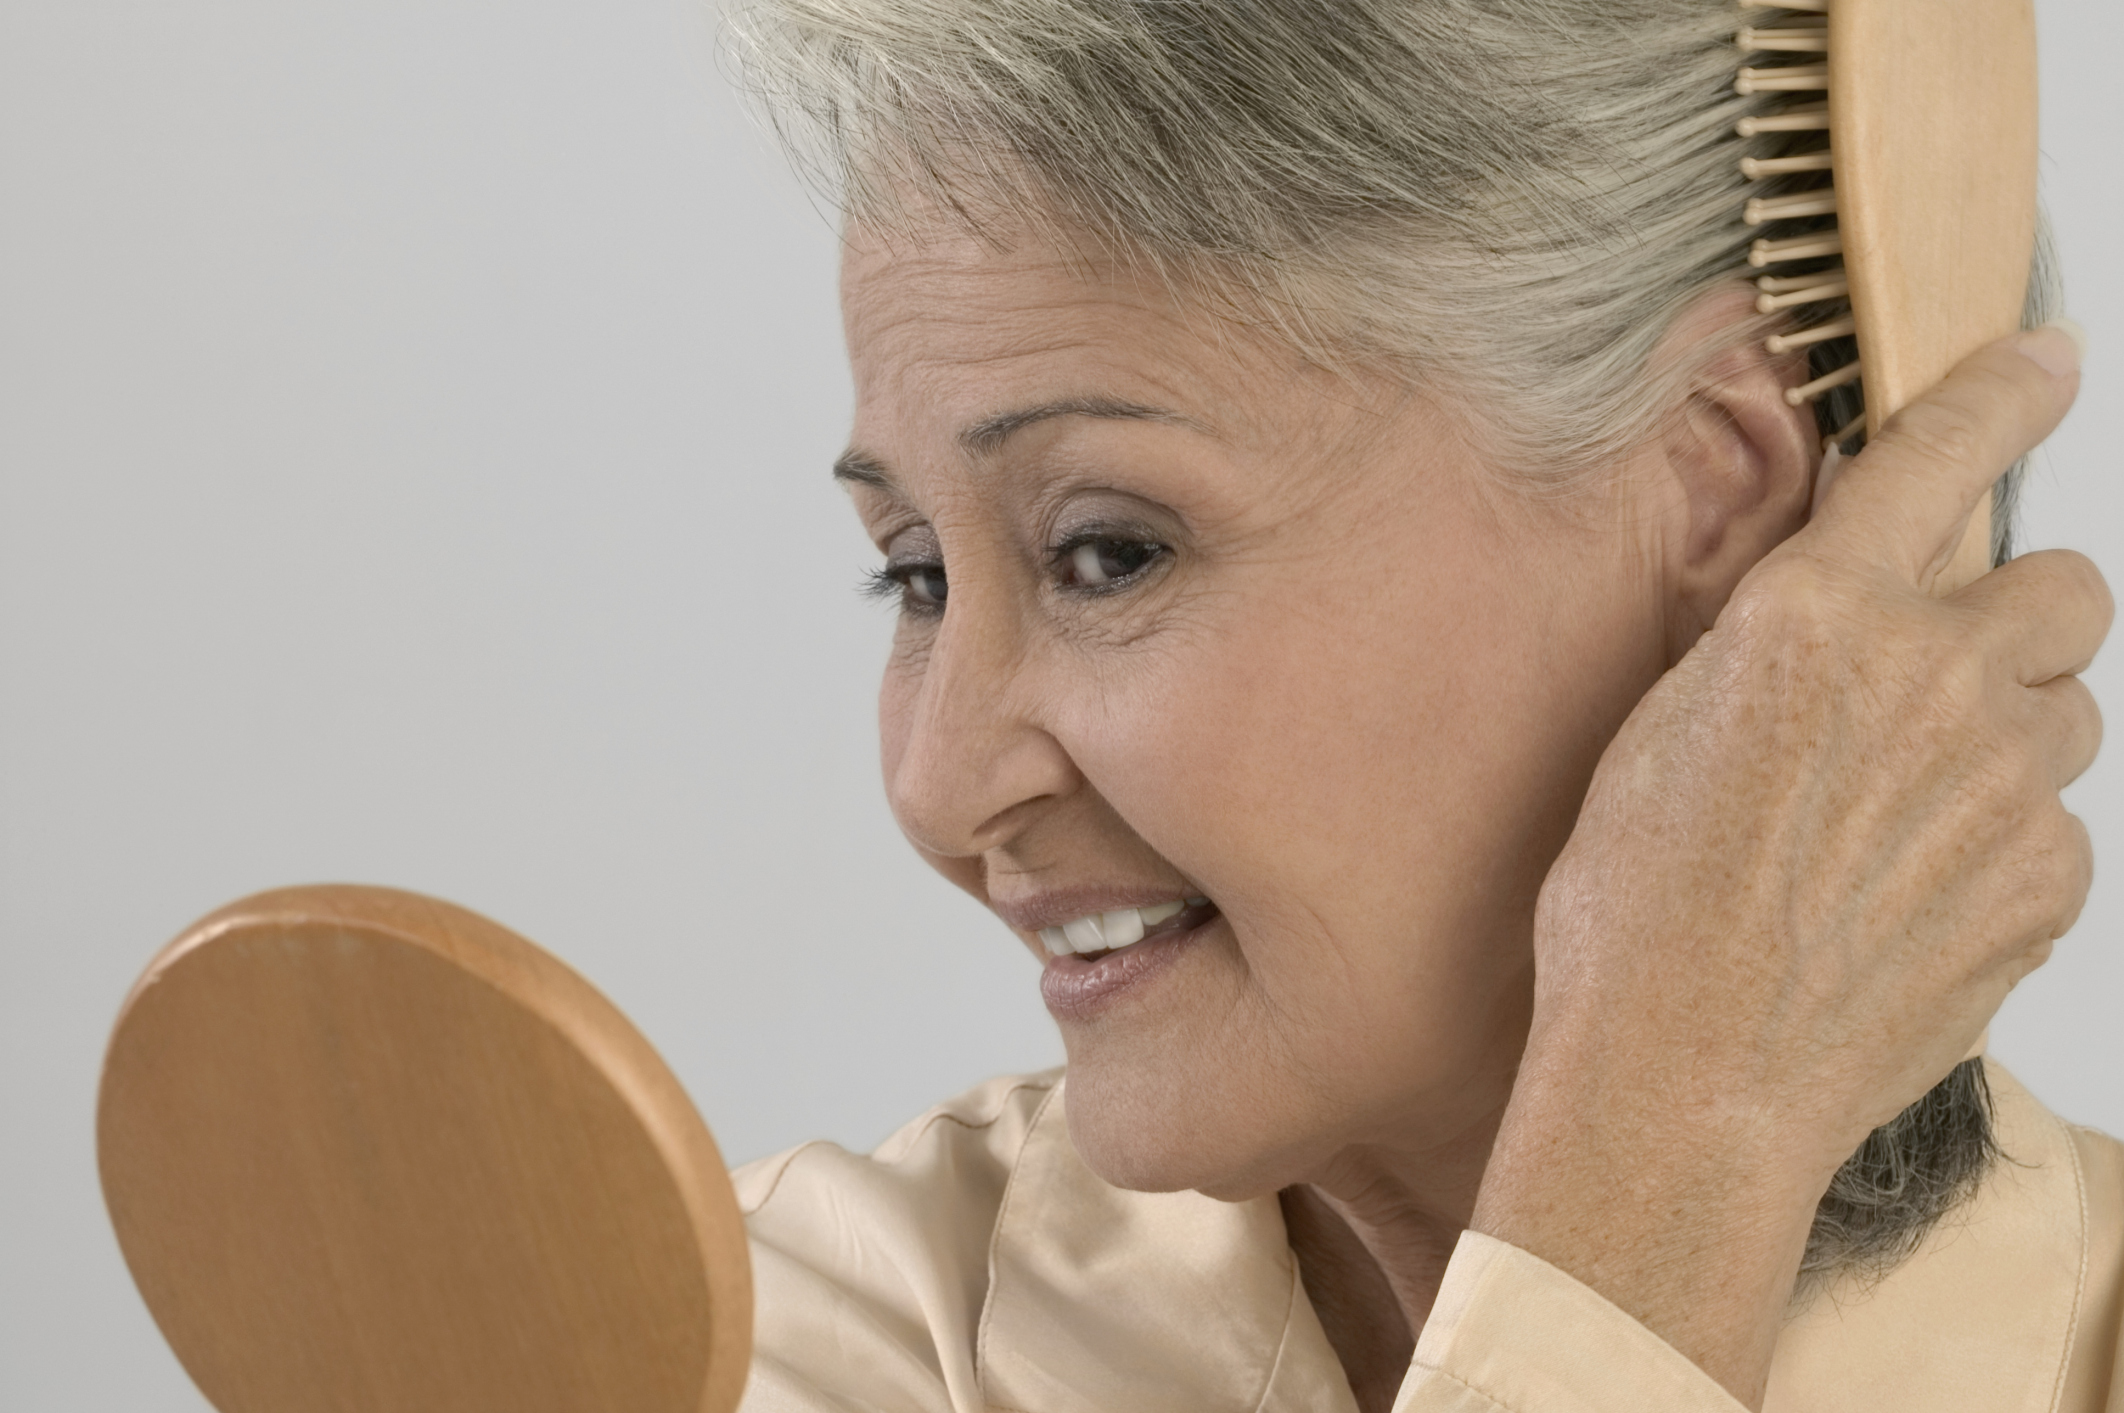 hairstyles for an aging face | leaftv